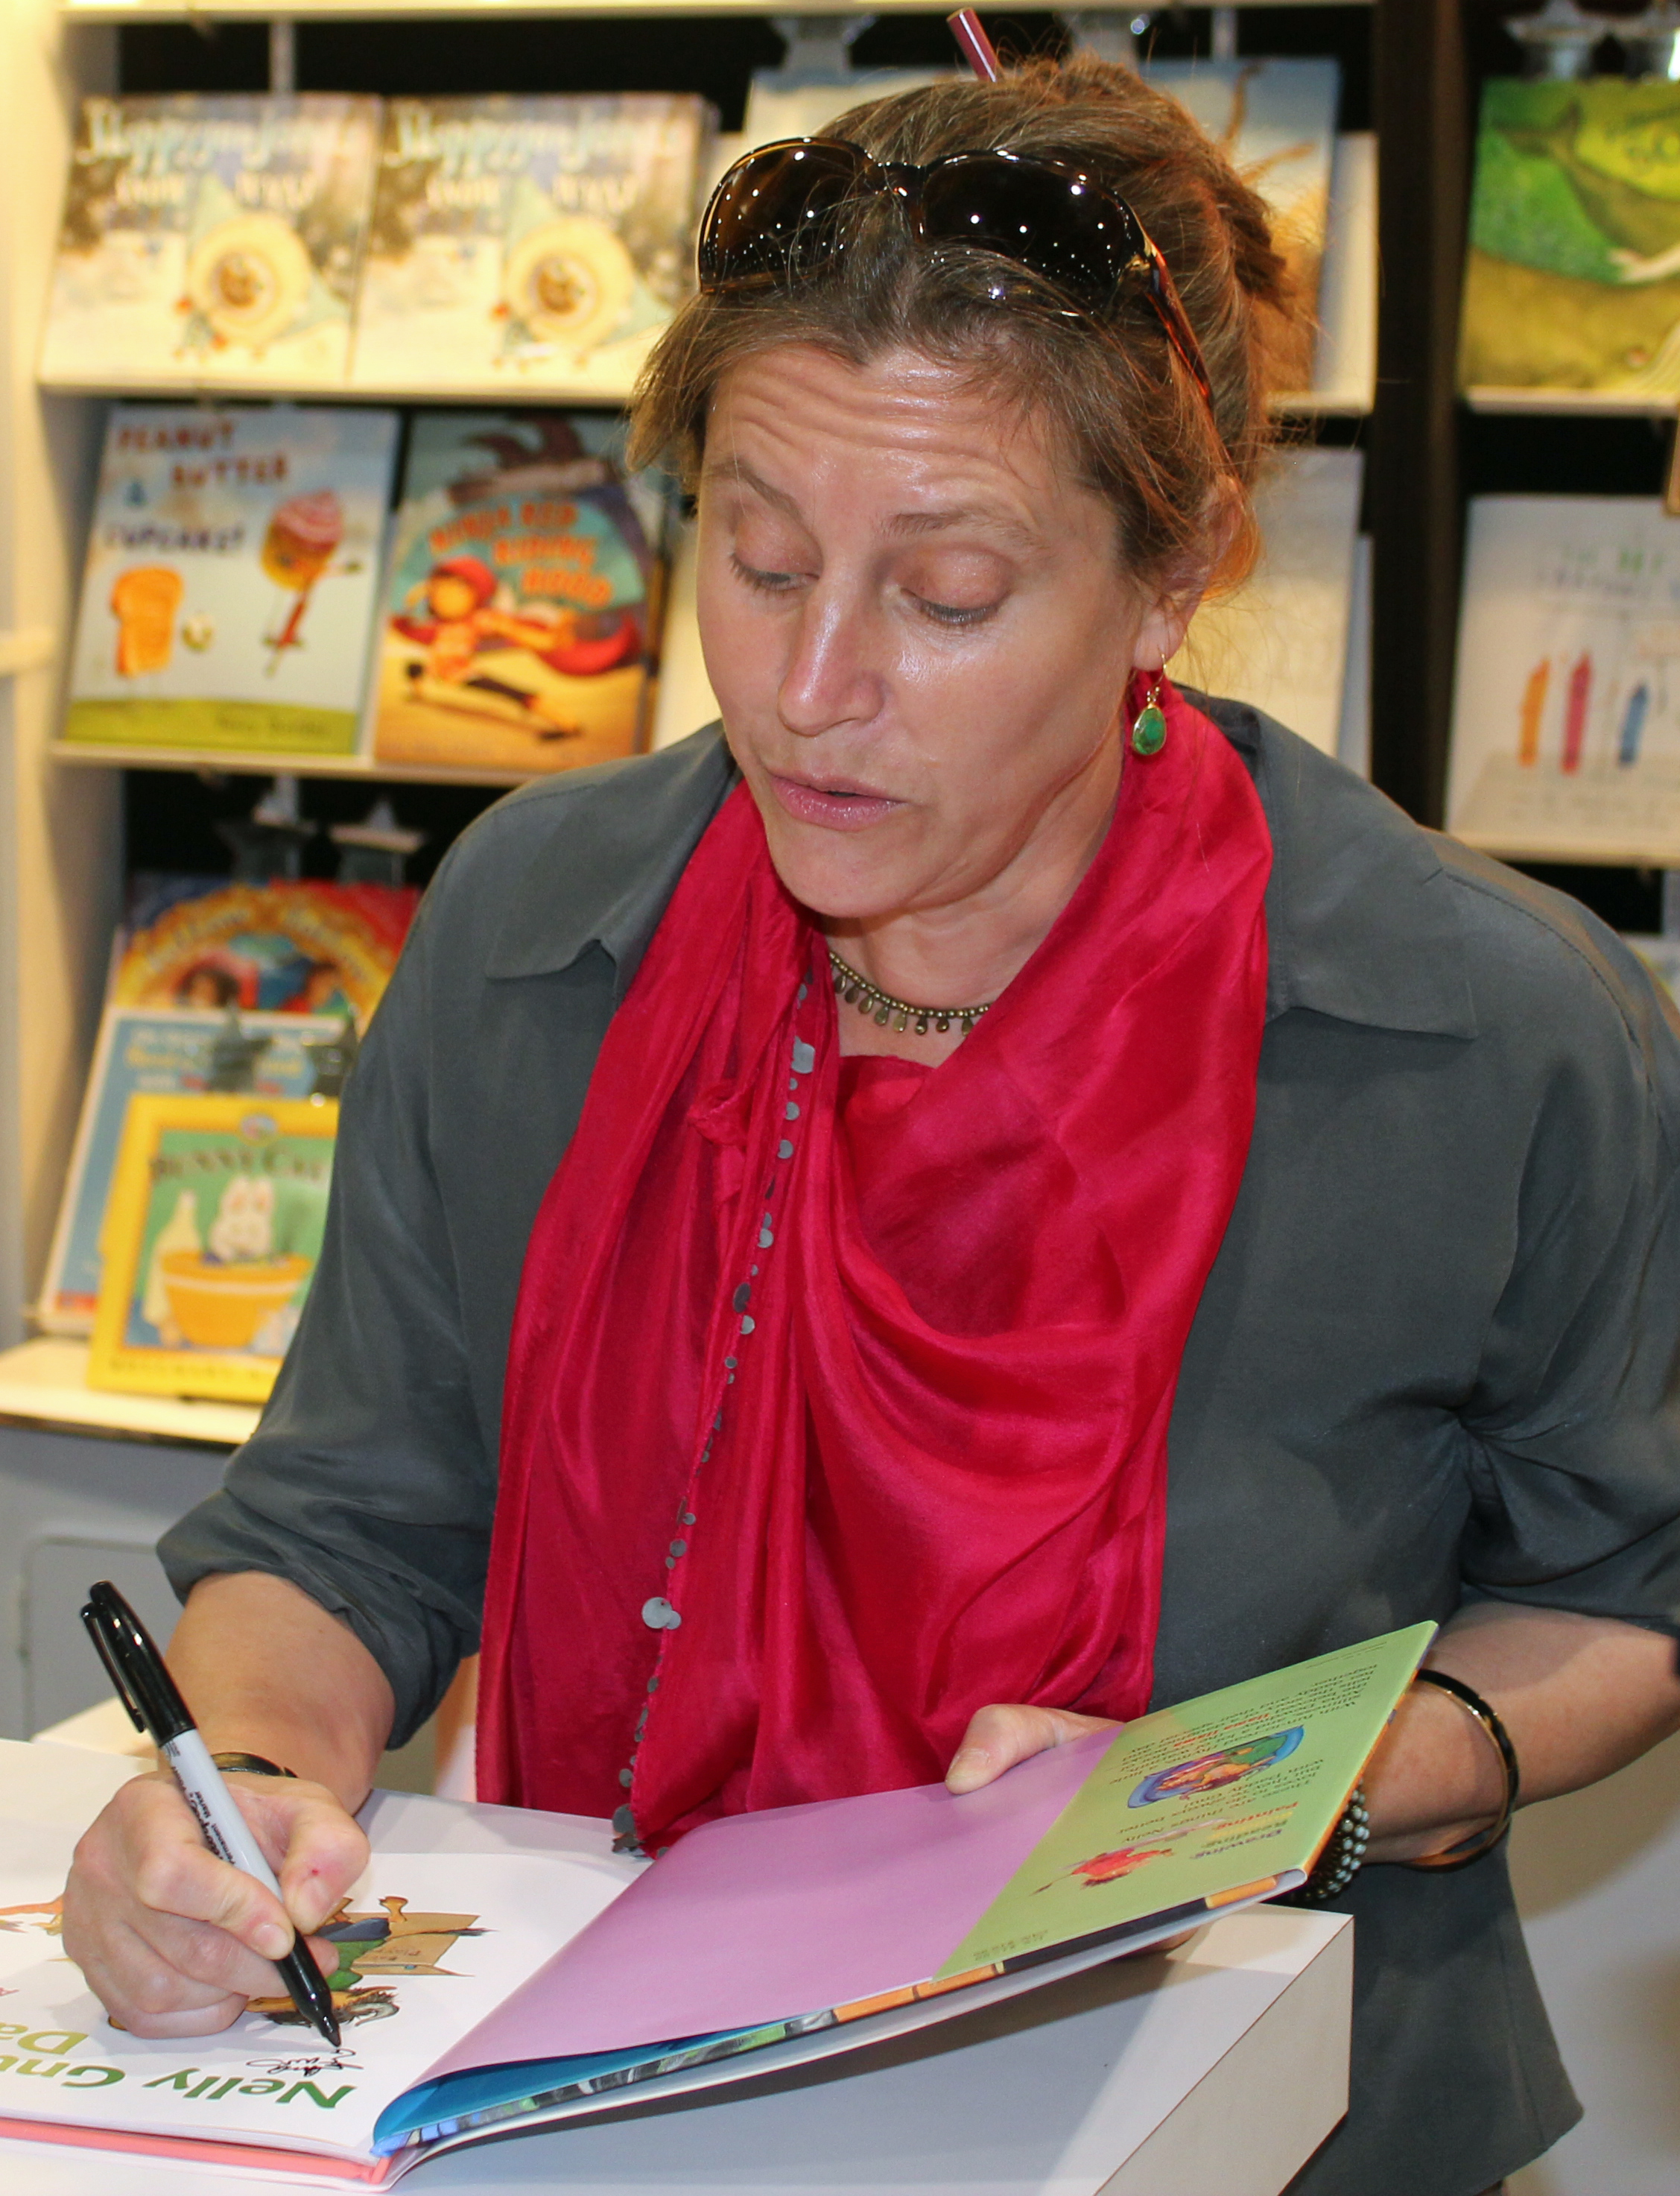 Dewdney at a book signing in 2014